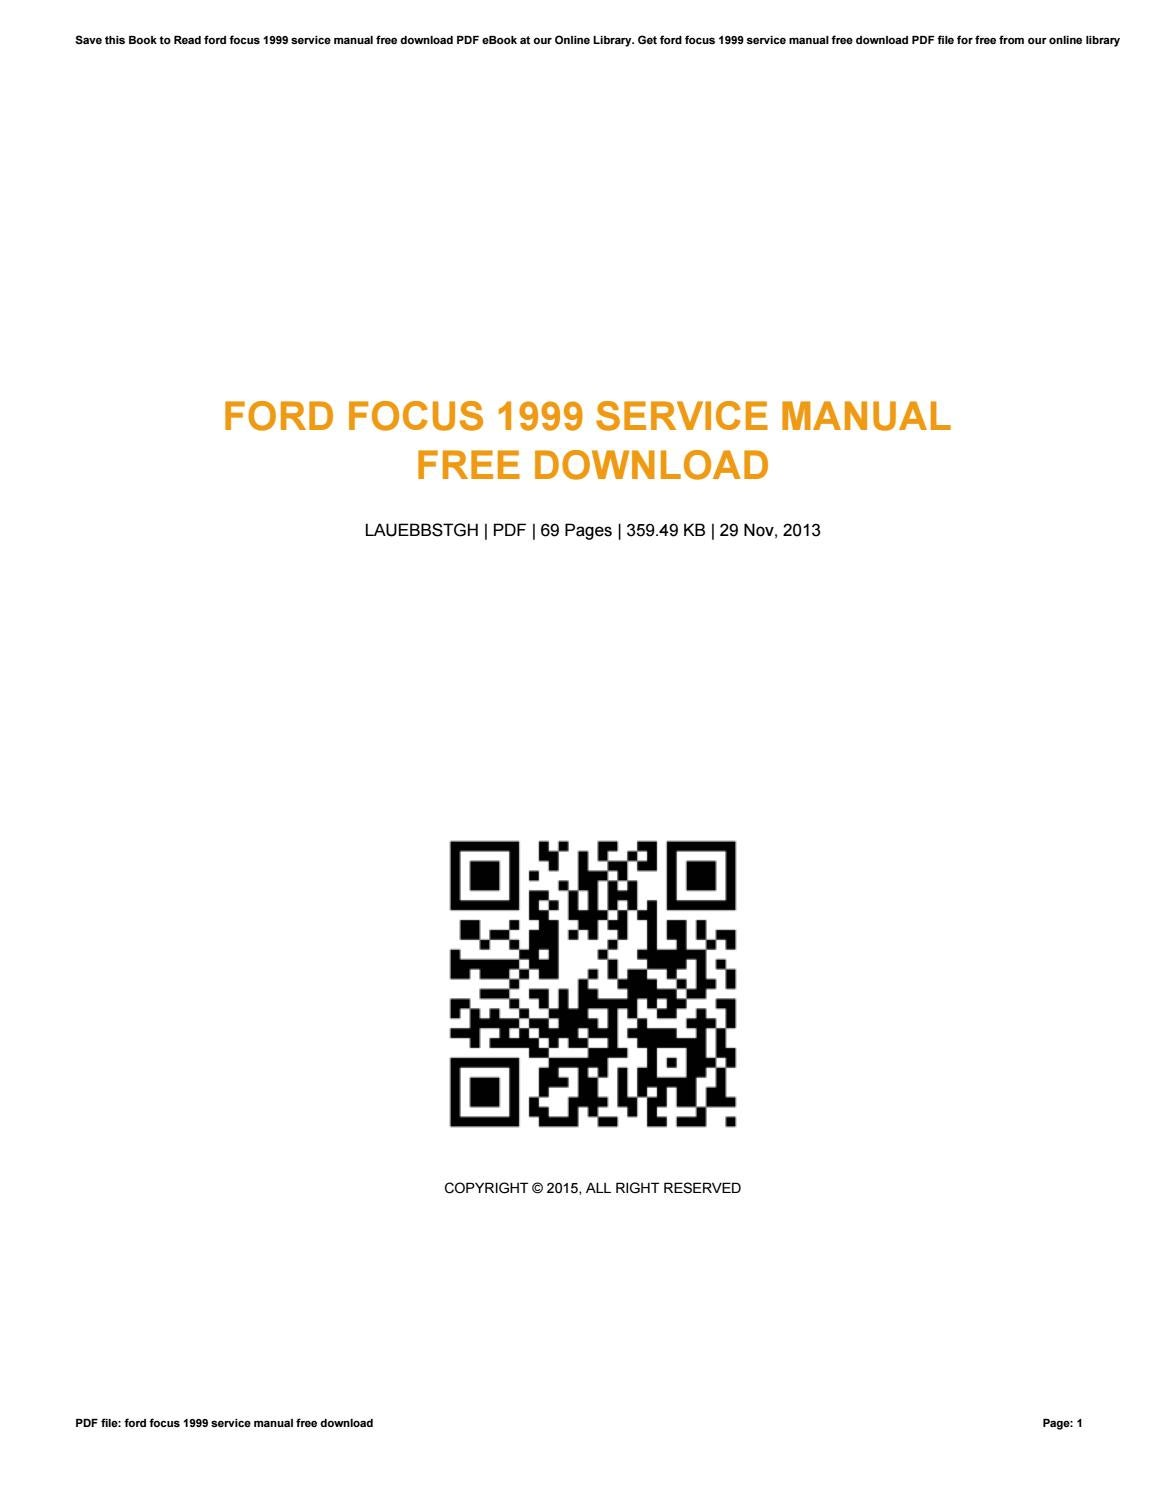 Ford Focus 1999 2007 Manual Guide